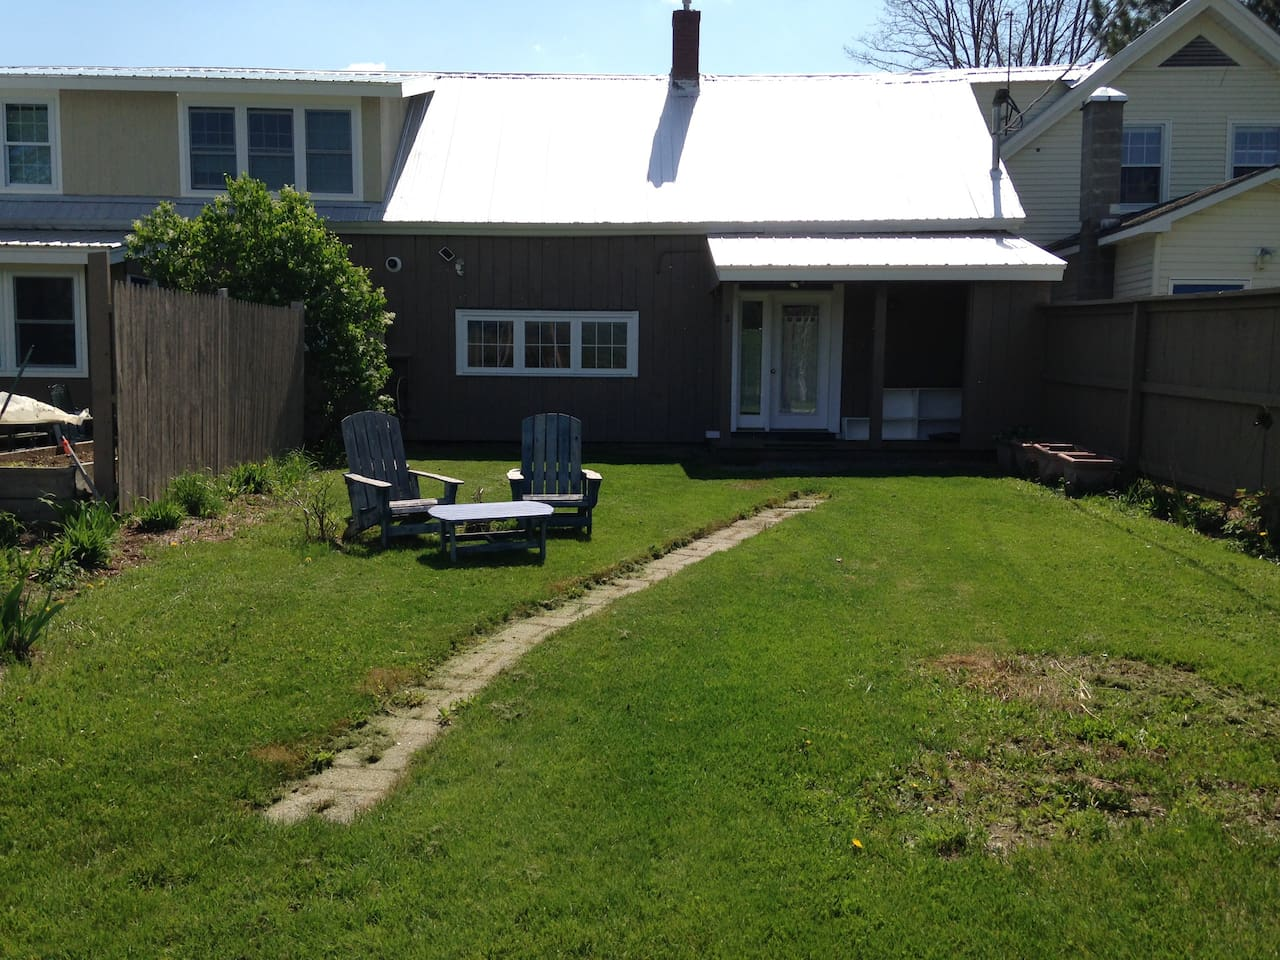 Yard and porch in spring